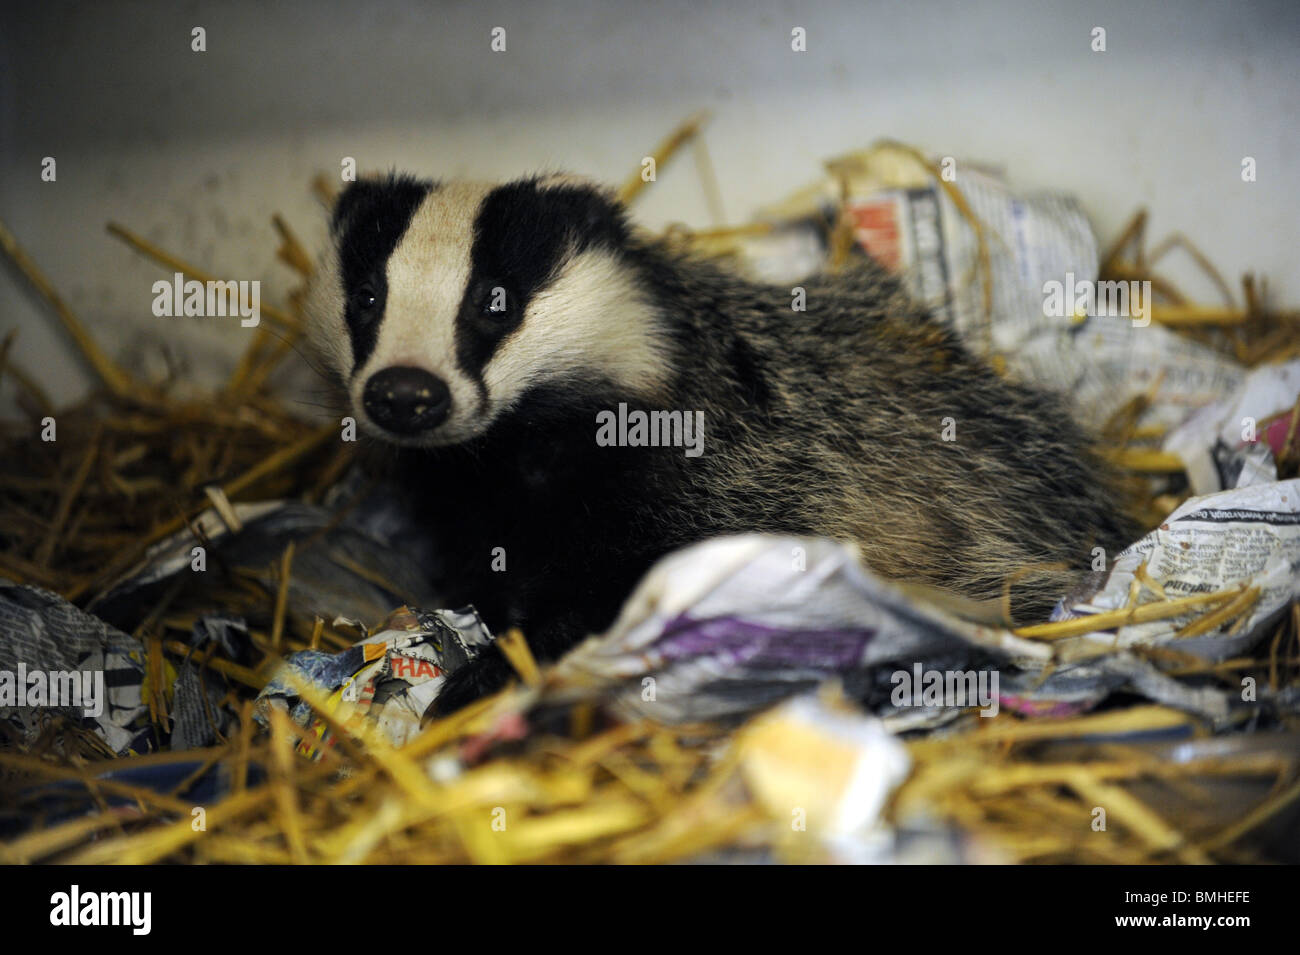 An injured Badger recovering at an animal rescue centre in Sussex - Stock Image